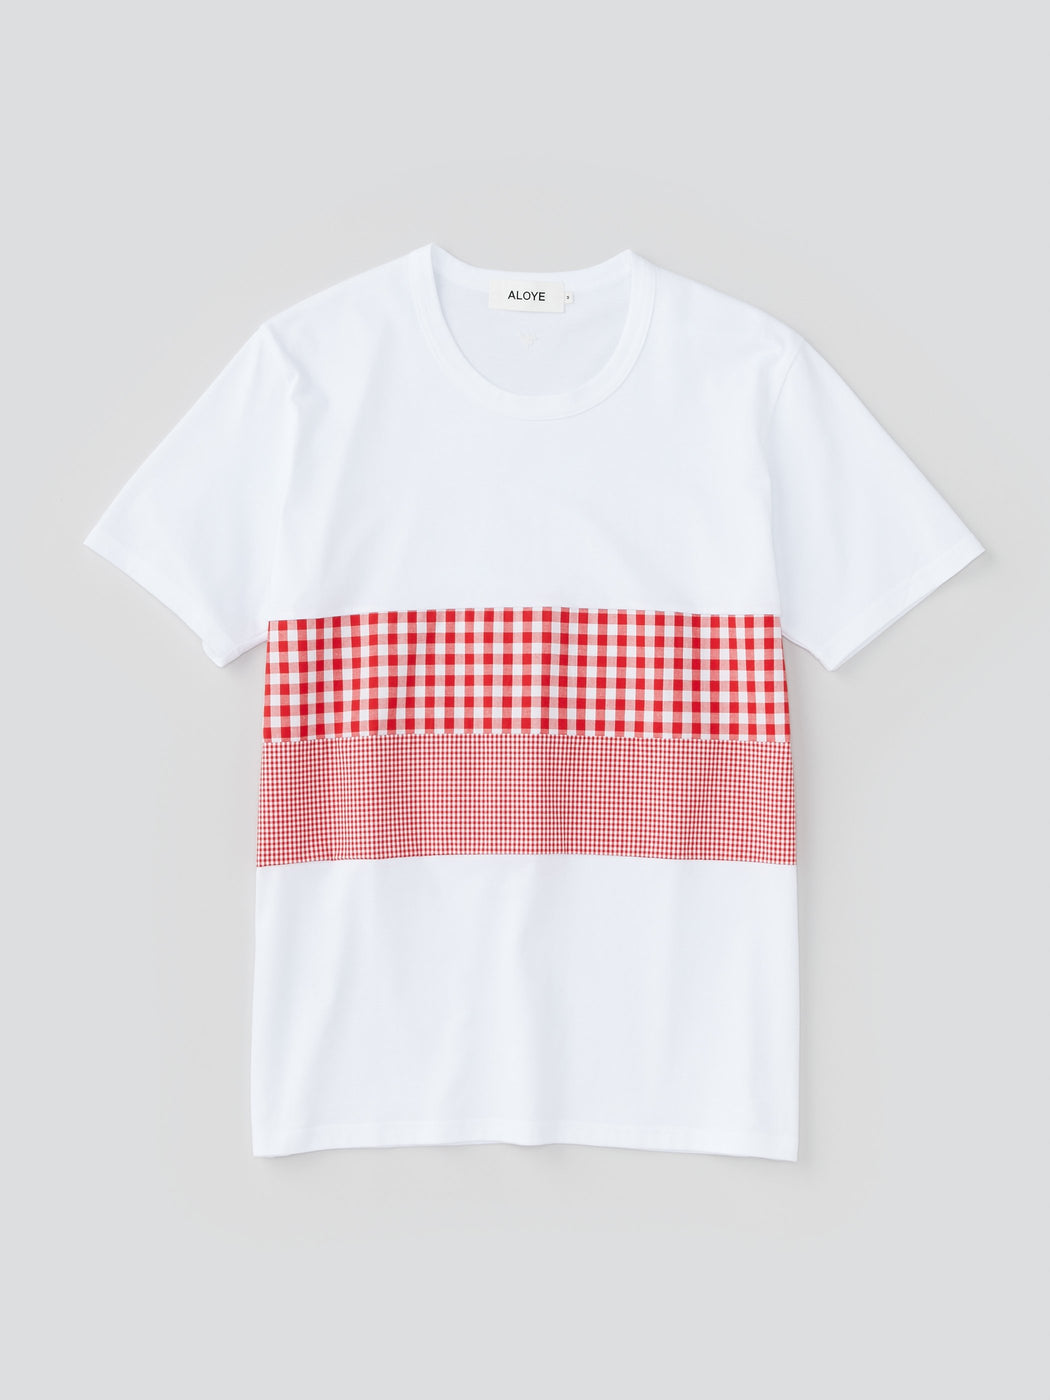 ALOYE Shirt Fabrics Men's Short Sleeve T-shirt White-Red Gingham Split